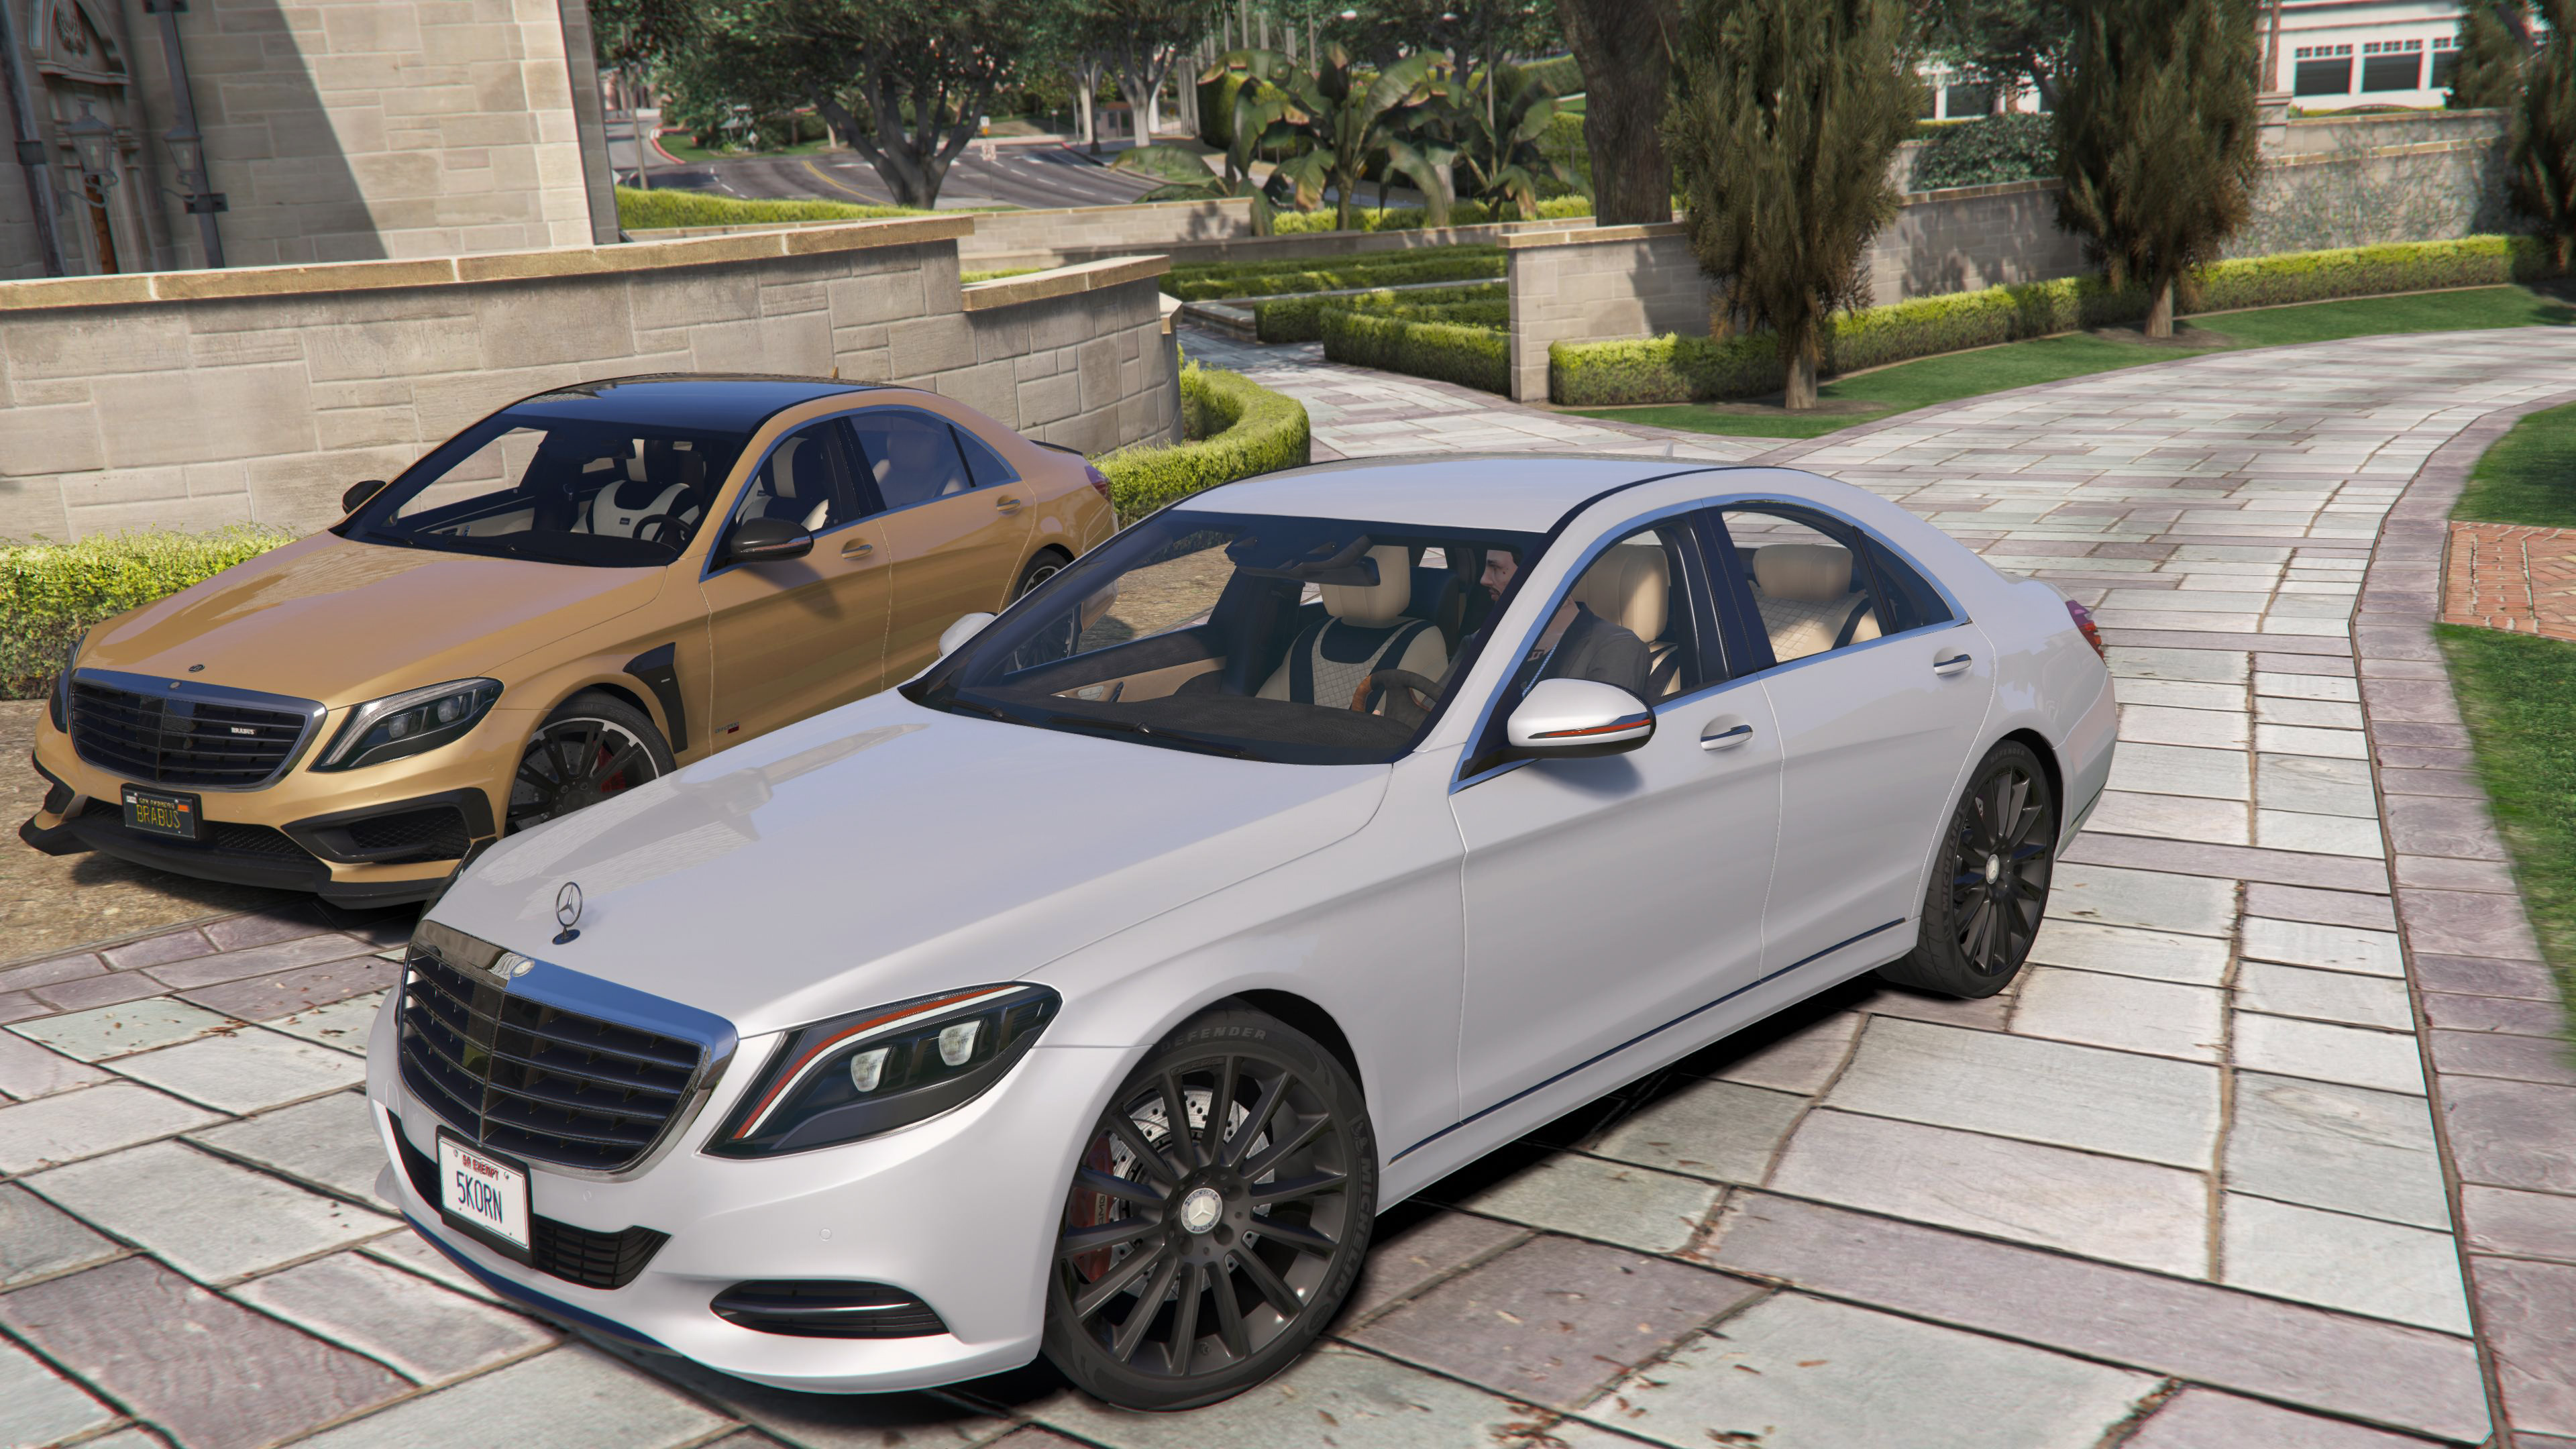 2014 mercedes benz s500 w222 add on replace gta5 for Mercedes benz s class 500